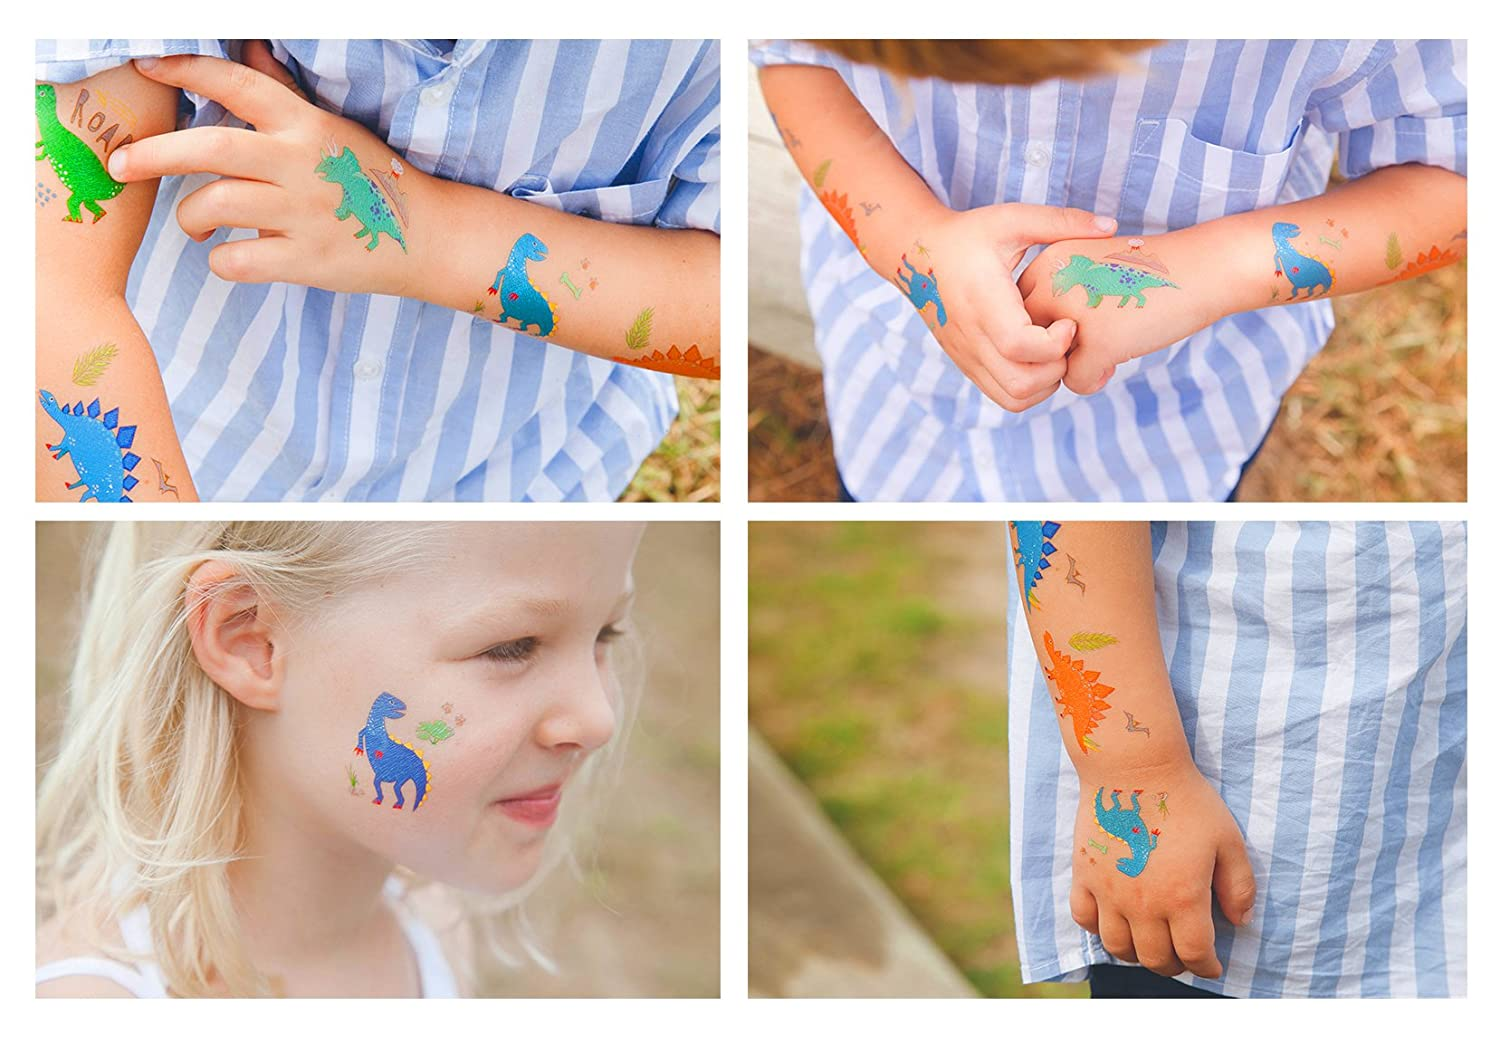 Parties and Events 24 Tattoos Hugo /& Emmy Dinosaur Temporary Tattoos for Kids Party Favors for Goodie Bags for Birthdays 12 Sheets